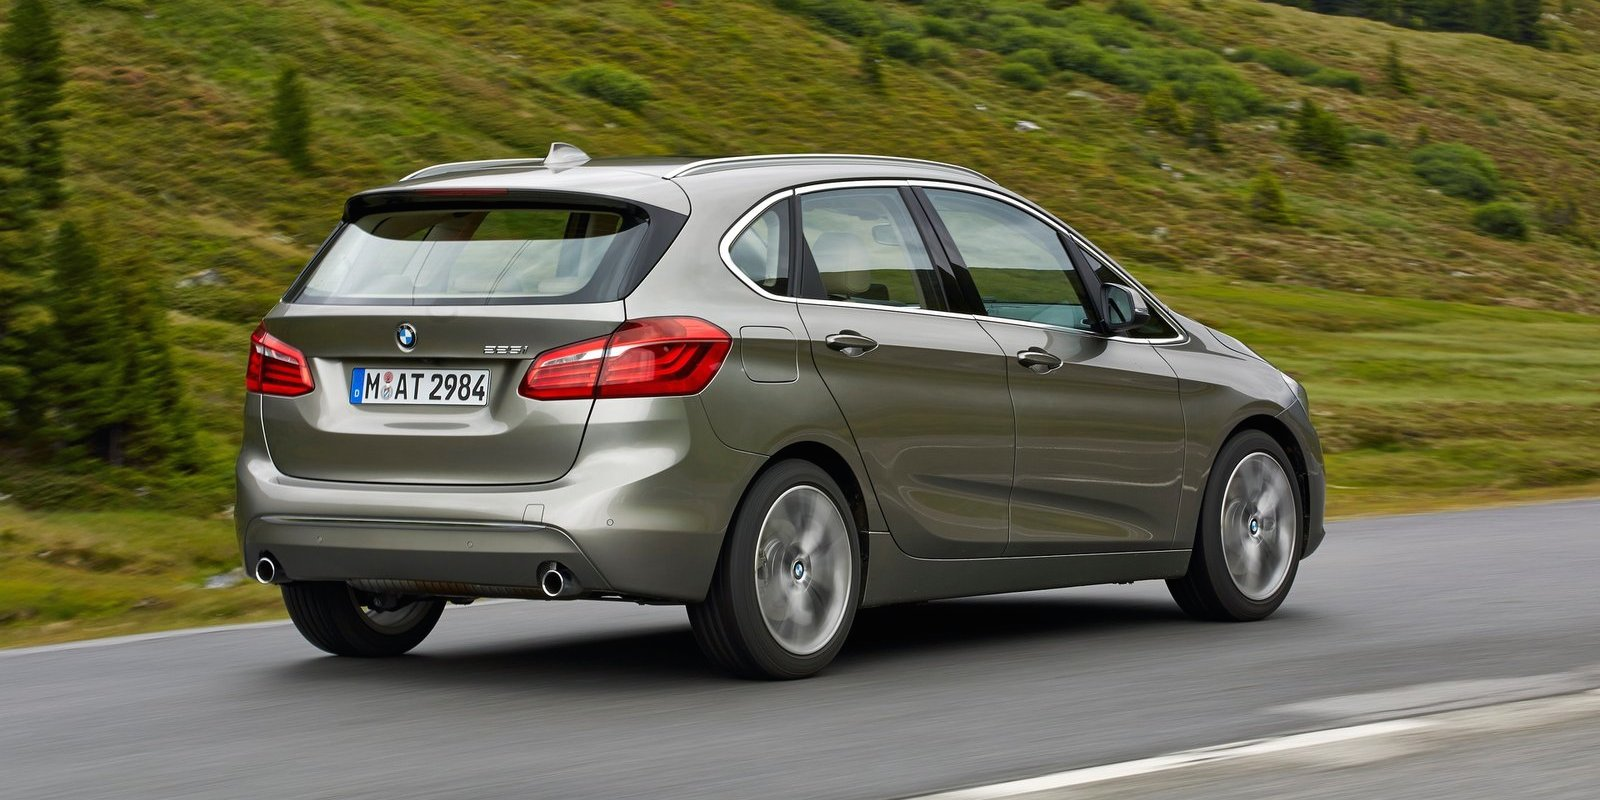 BMW 2 series Active Tourer 220d 2014 photo - 4